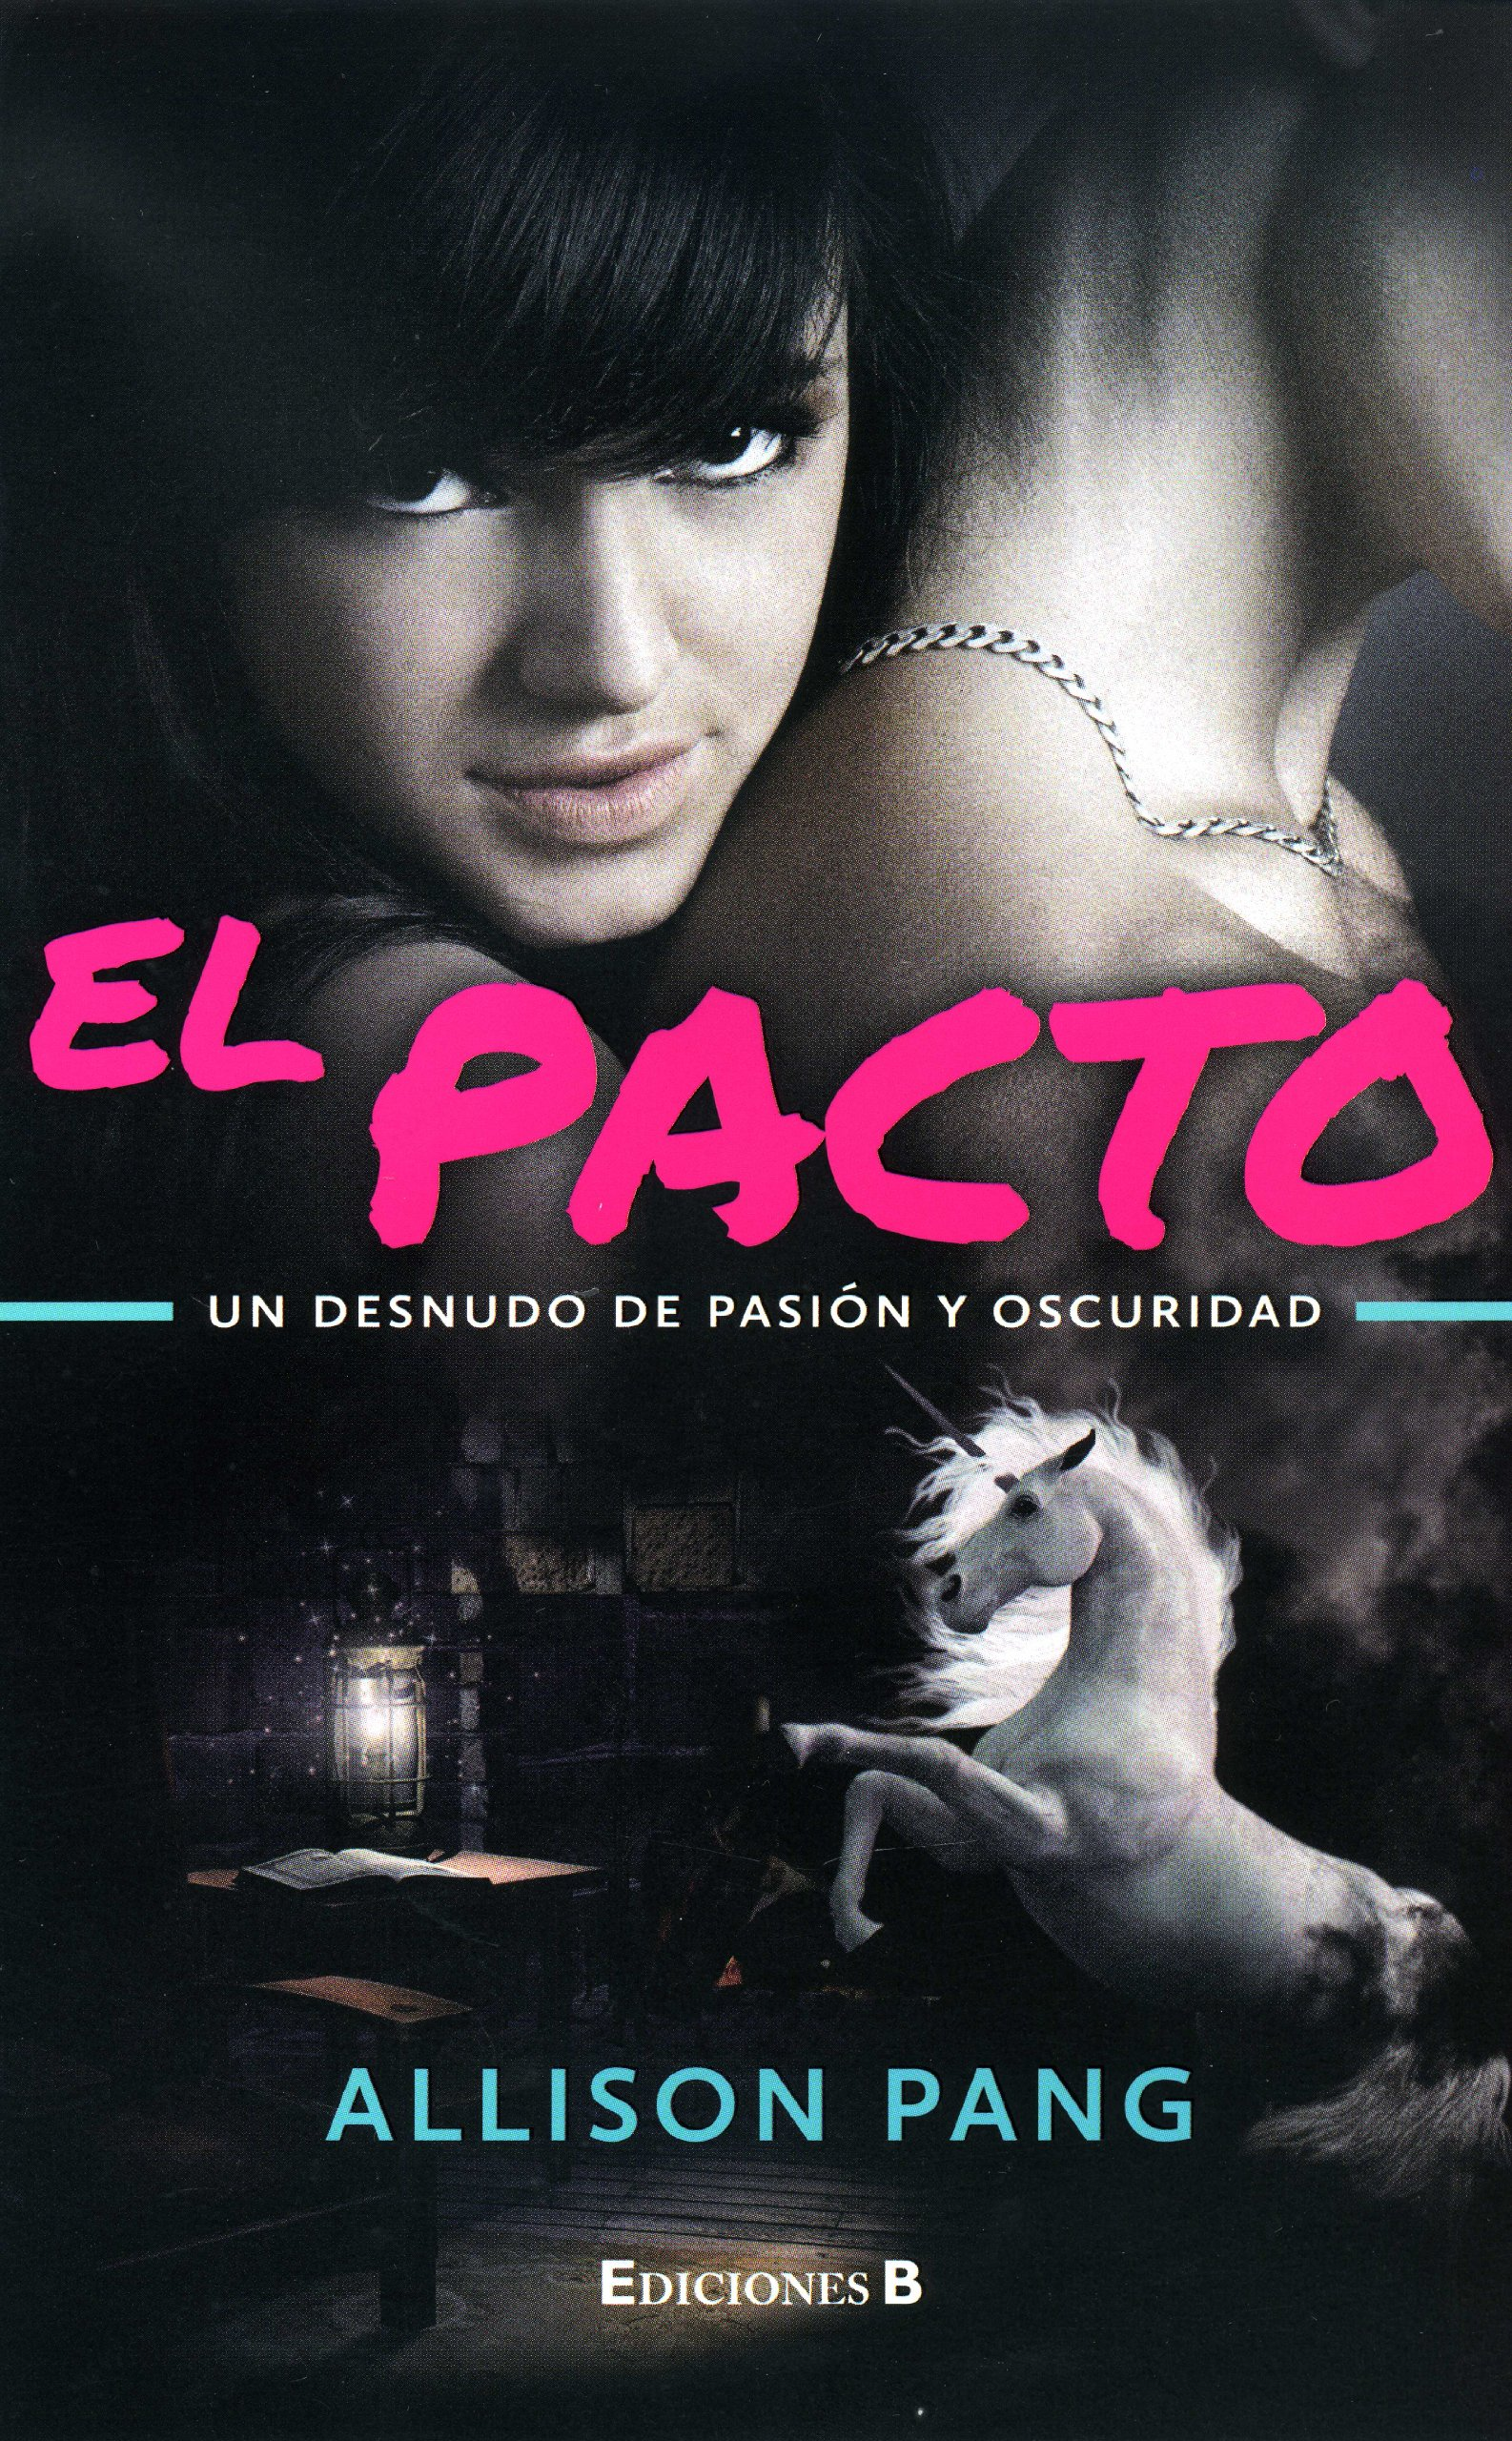 El pacto (Spanish Edition): Allison Pang: 9786074802023: Amazon.com: Books